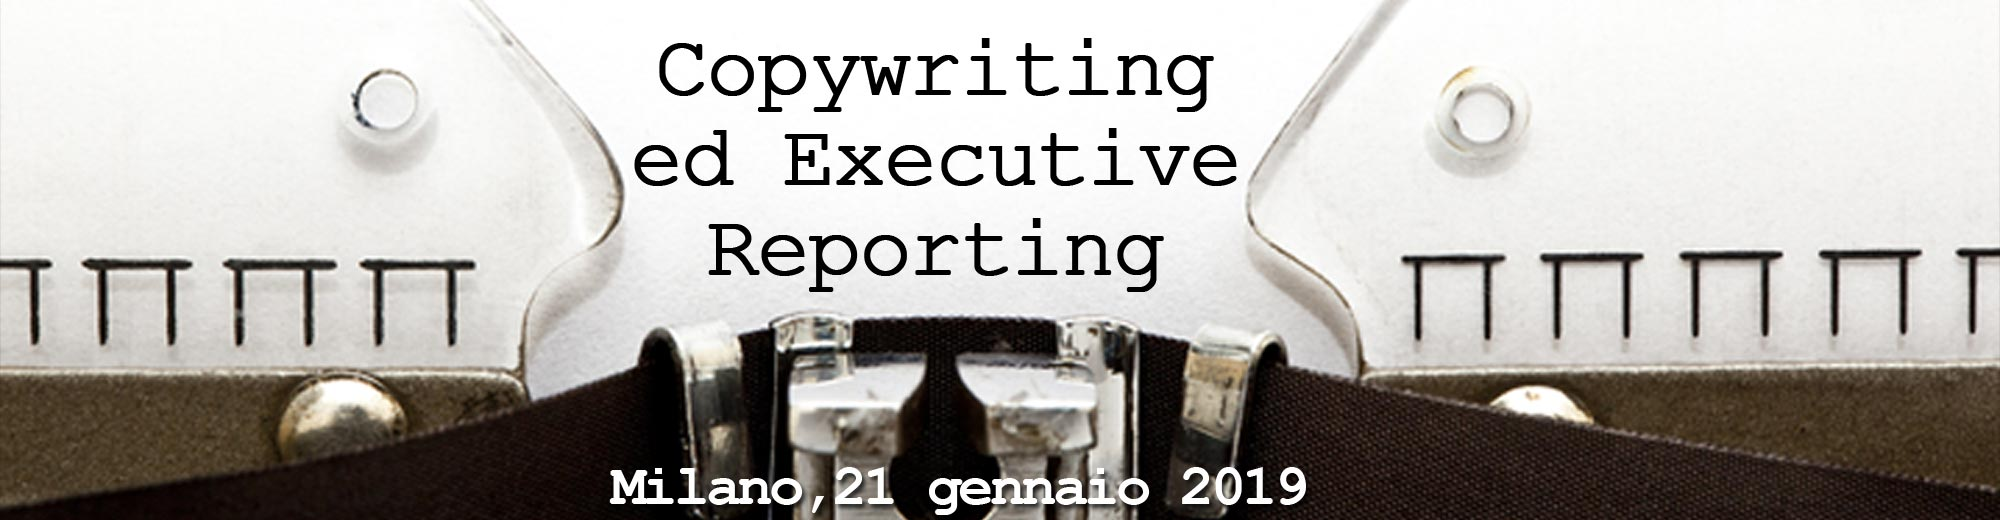 Copywriting ed Executive Reporting